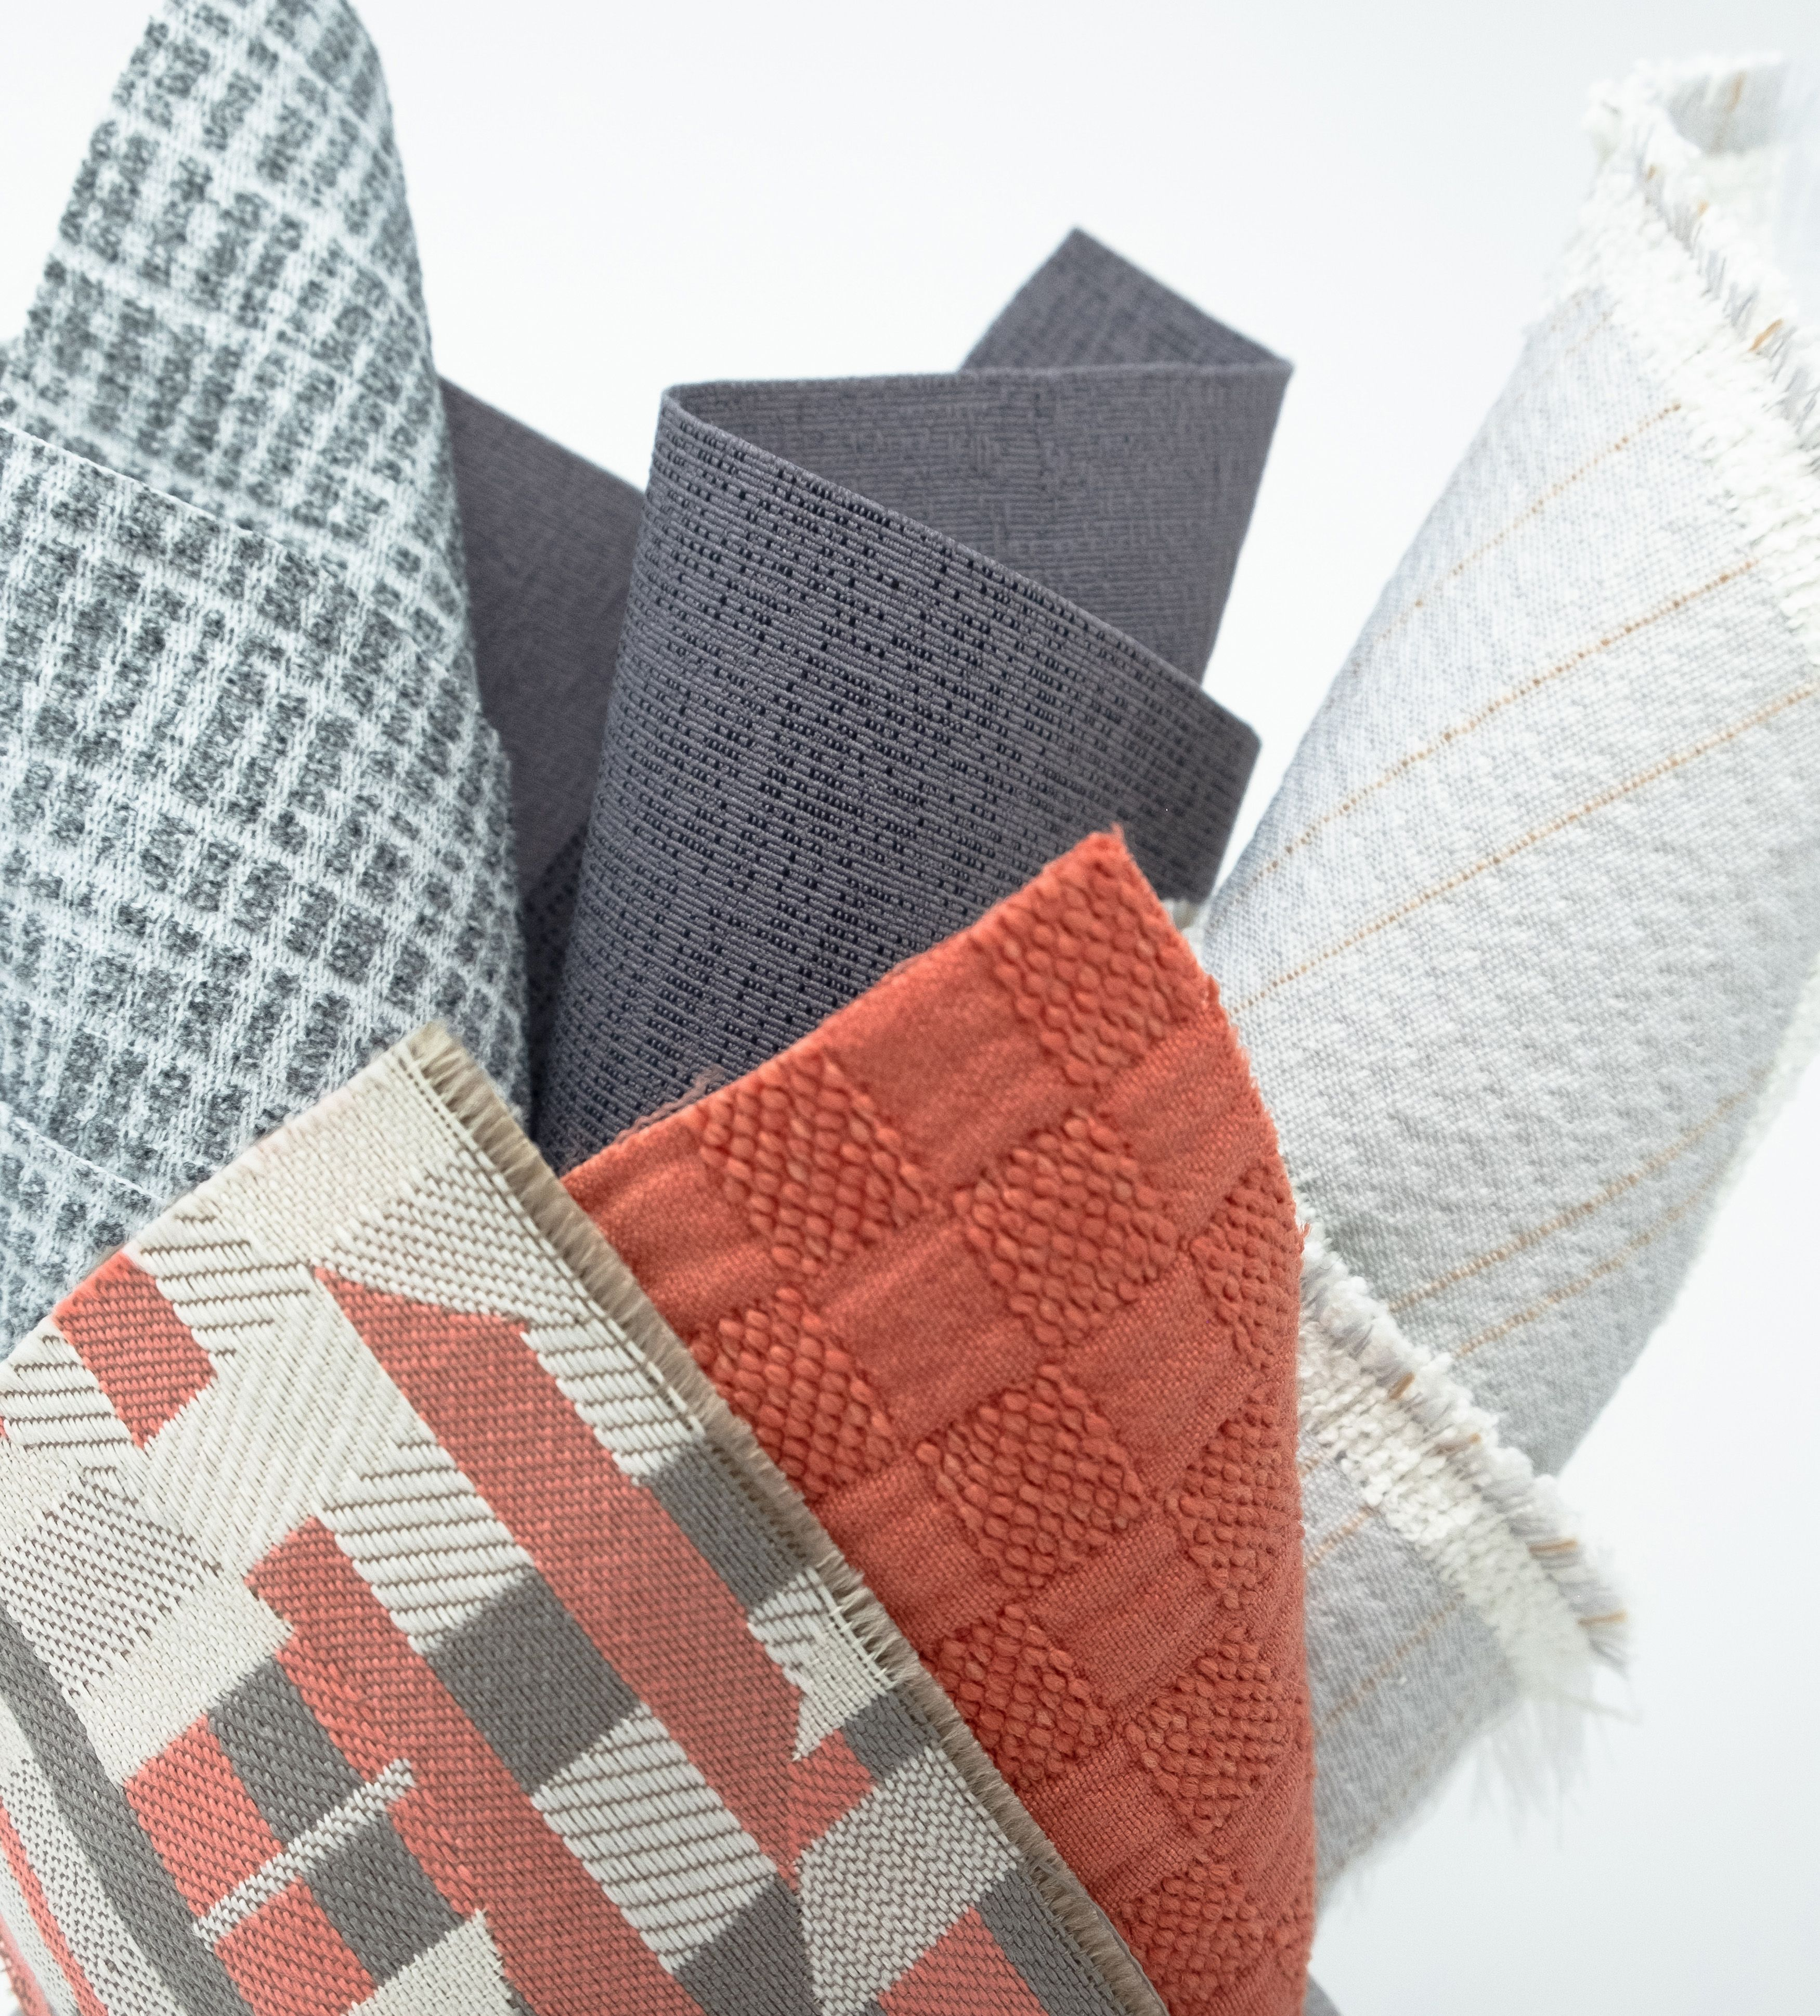 Duvaltex Introduces Clean Impact Textiles Industry First 100